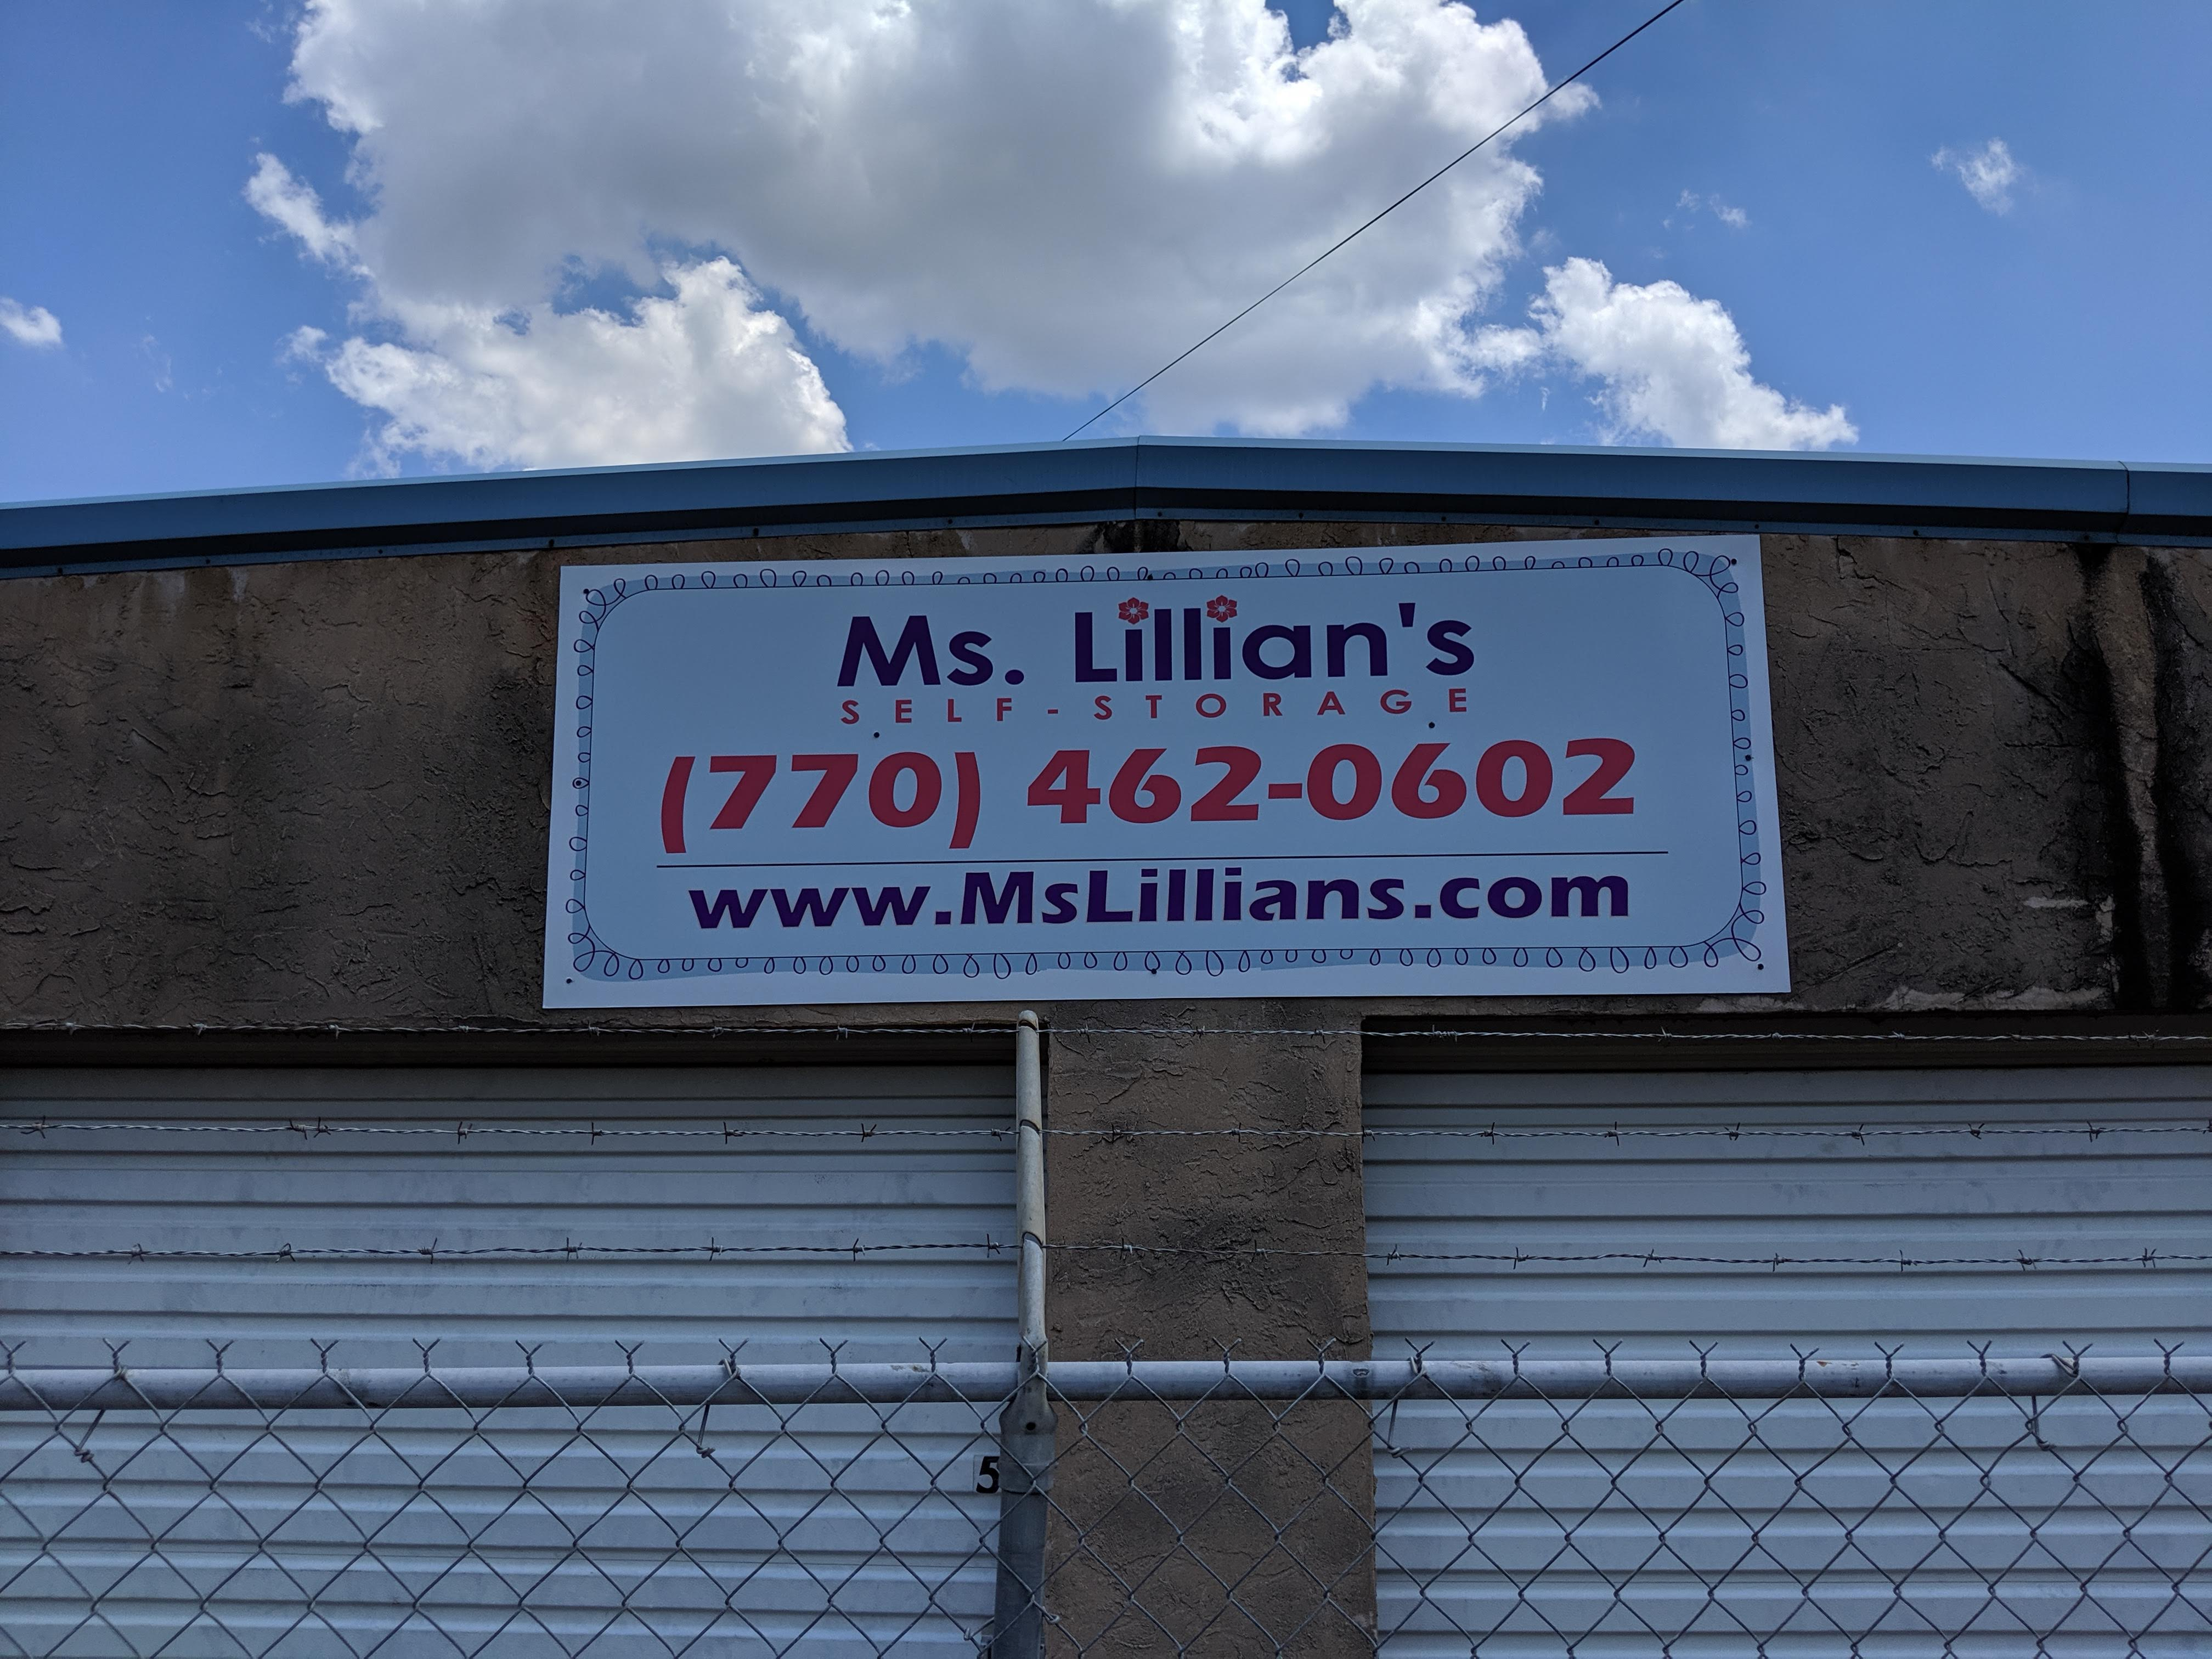 Ms. Lillian's Self-Storage - Fairburn